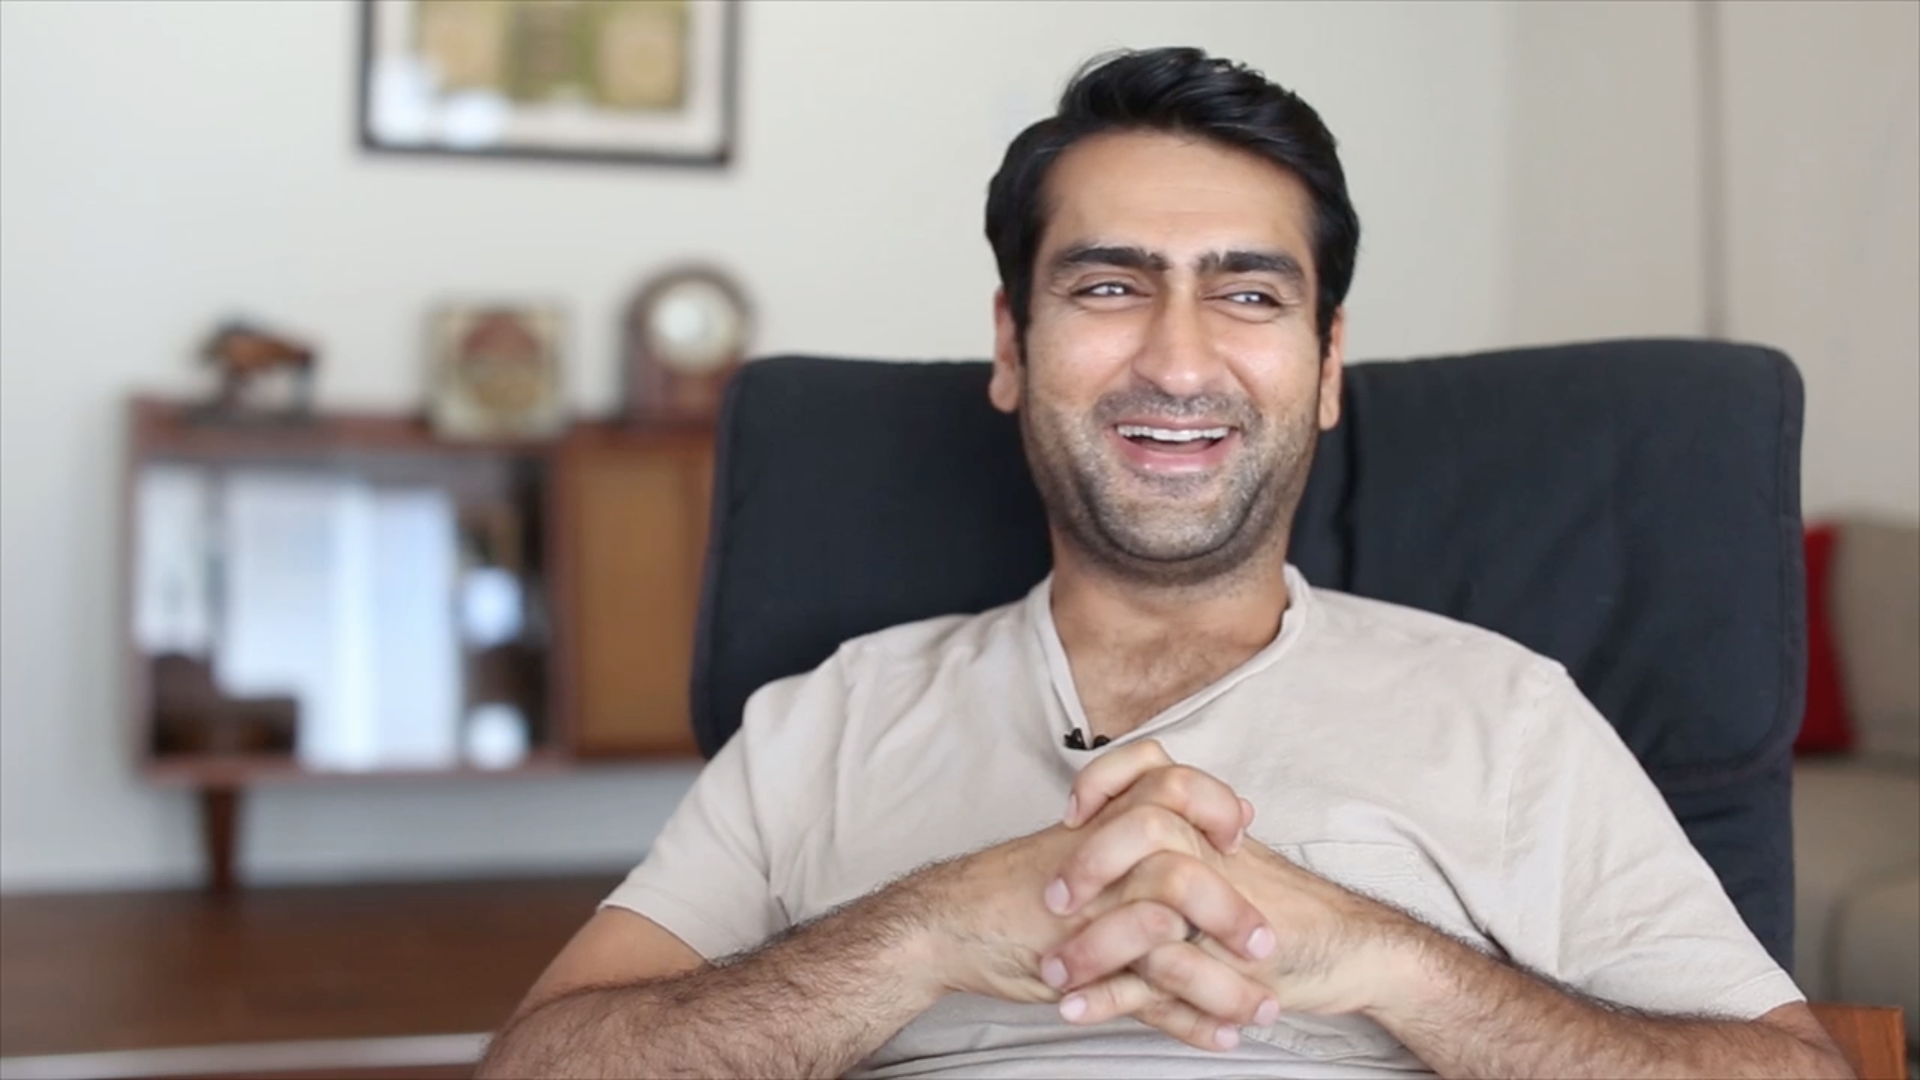 Kumail Nanjiani has poop issues